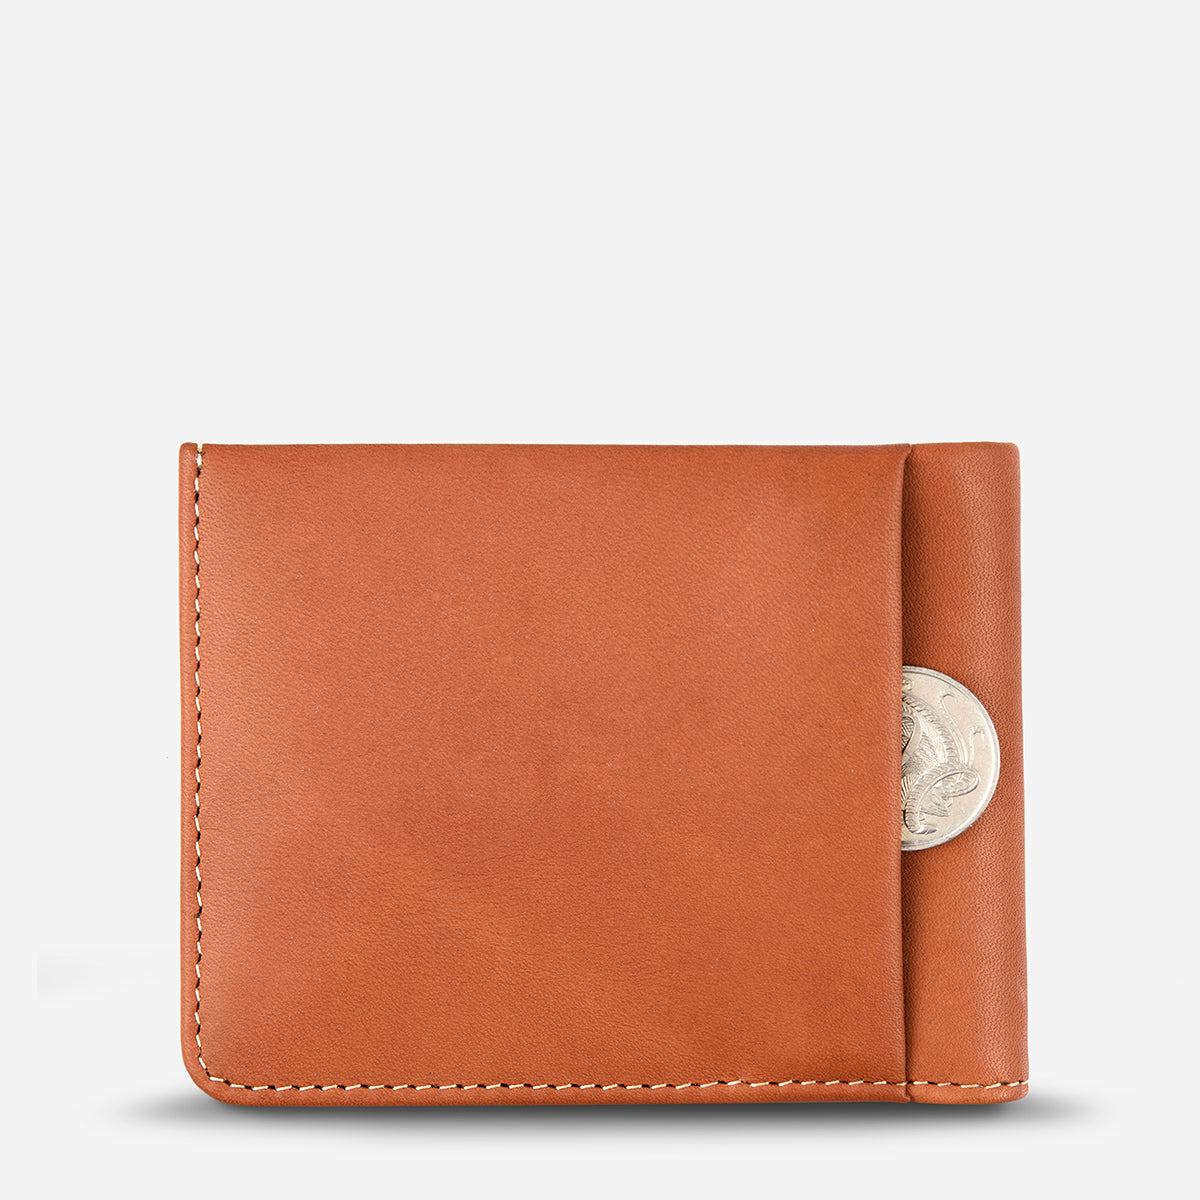 Status Anxiety Alfred Men's Slim Leather Wallet - Camel